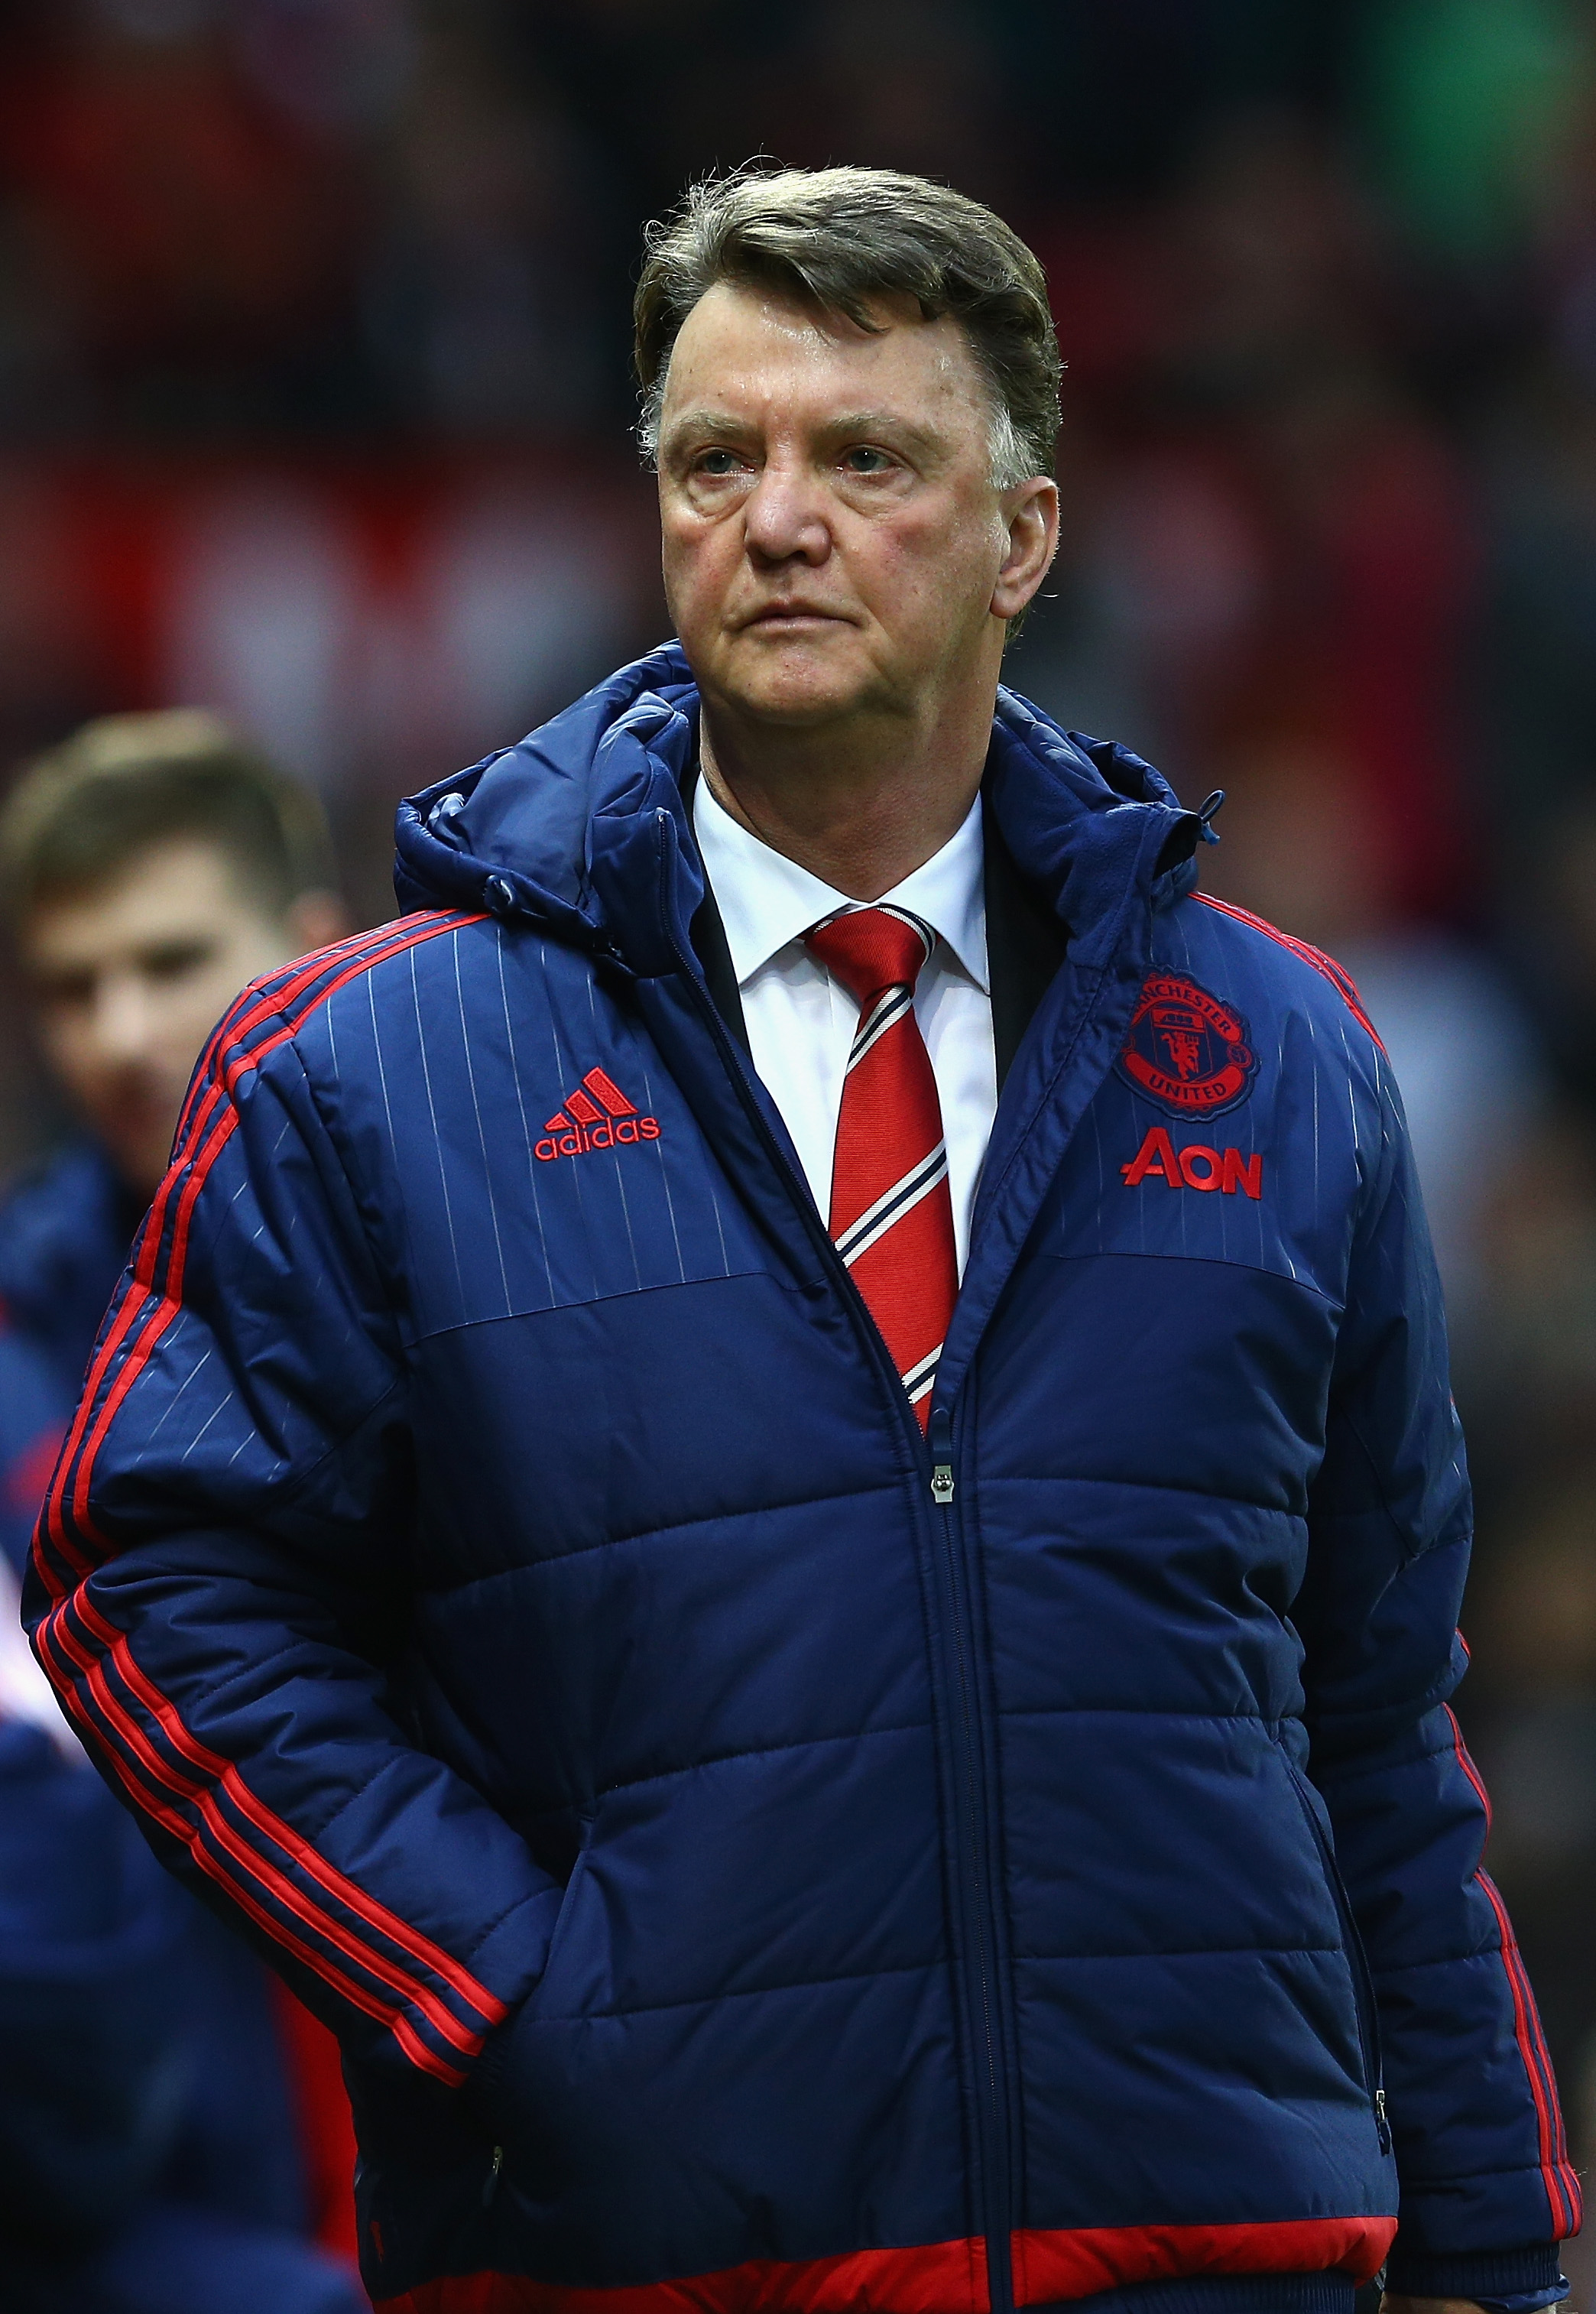 Louis van Gaal walks out of Manchester United press conference as sacking rumours persist